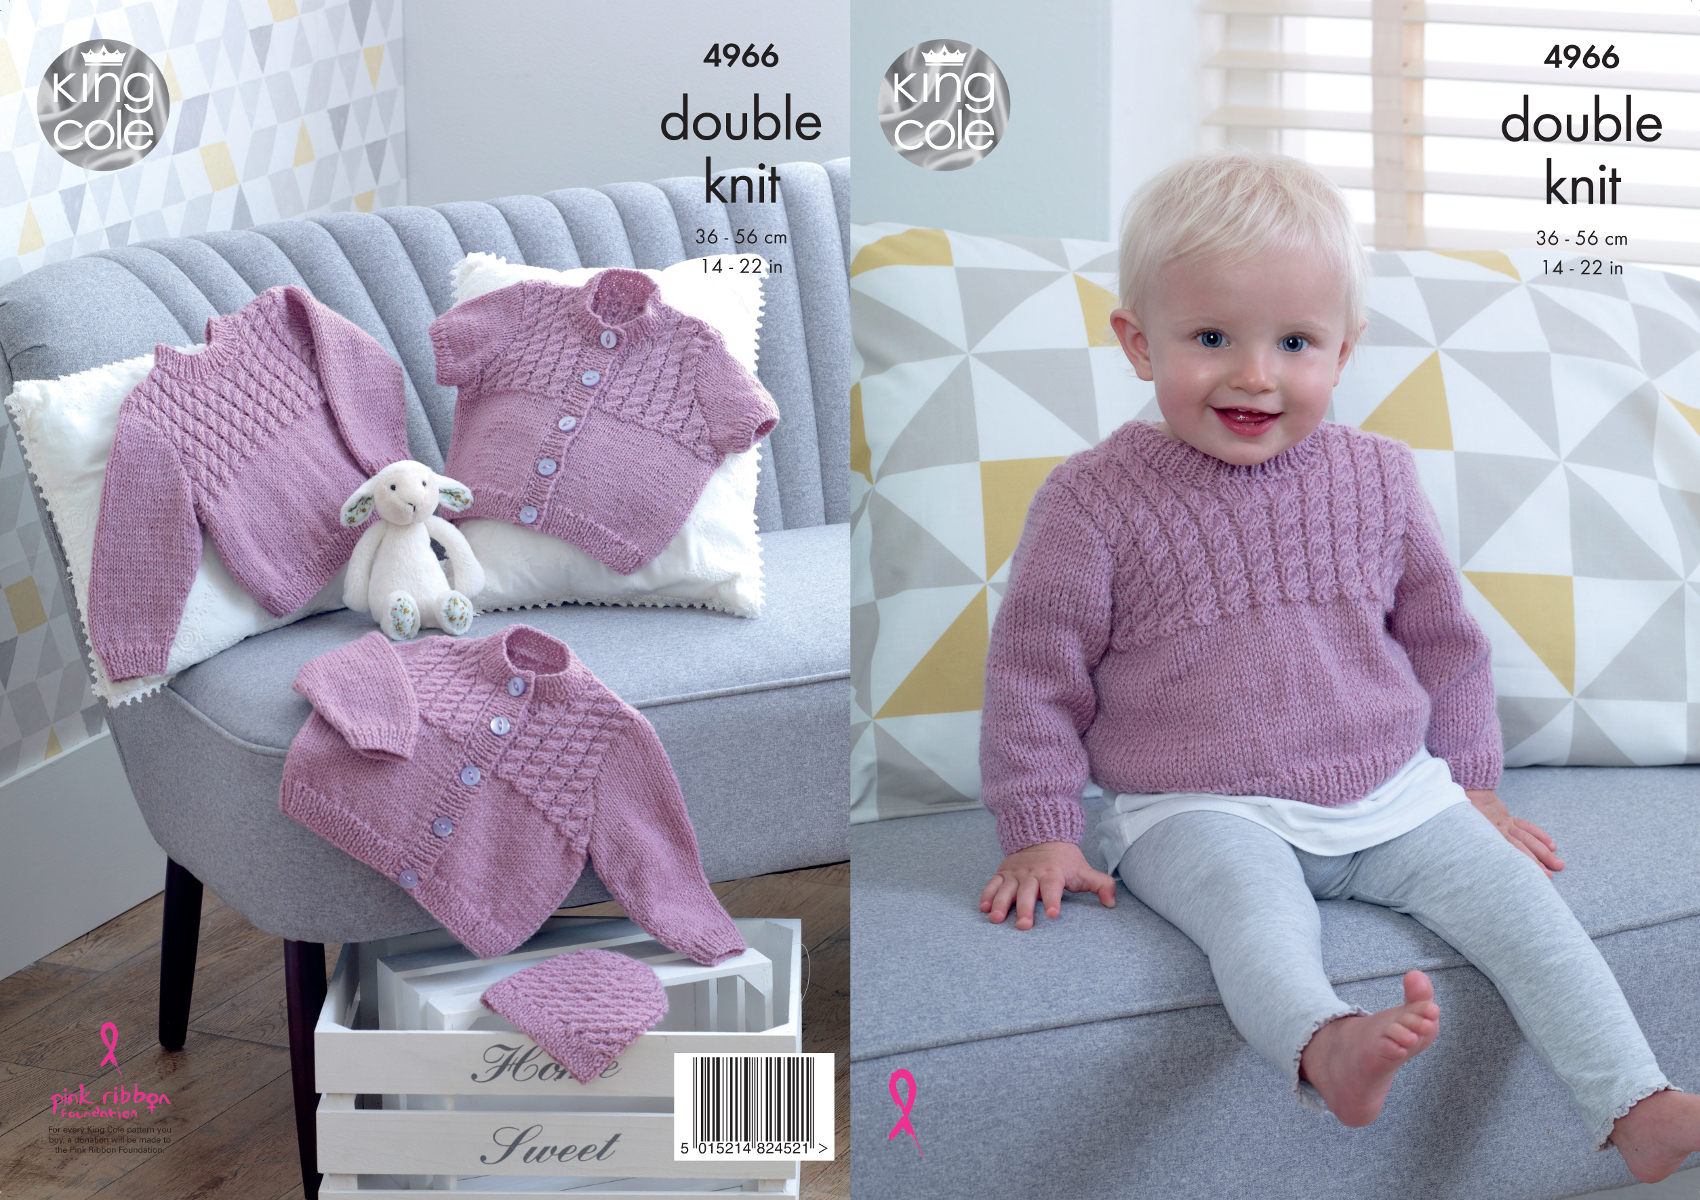 Baby double knitting pattern cable knit sweater cardigans hat baby double knitting pattern cable knit sweater cardigans hat king cole 4966 bankloansurffo Choice Image